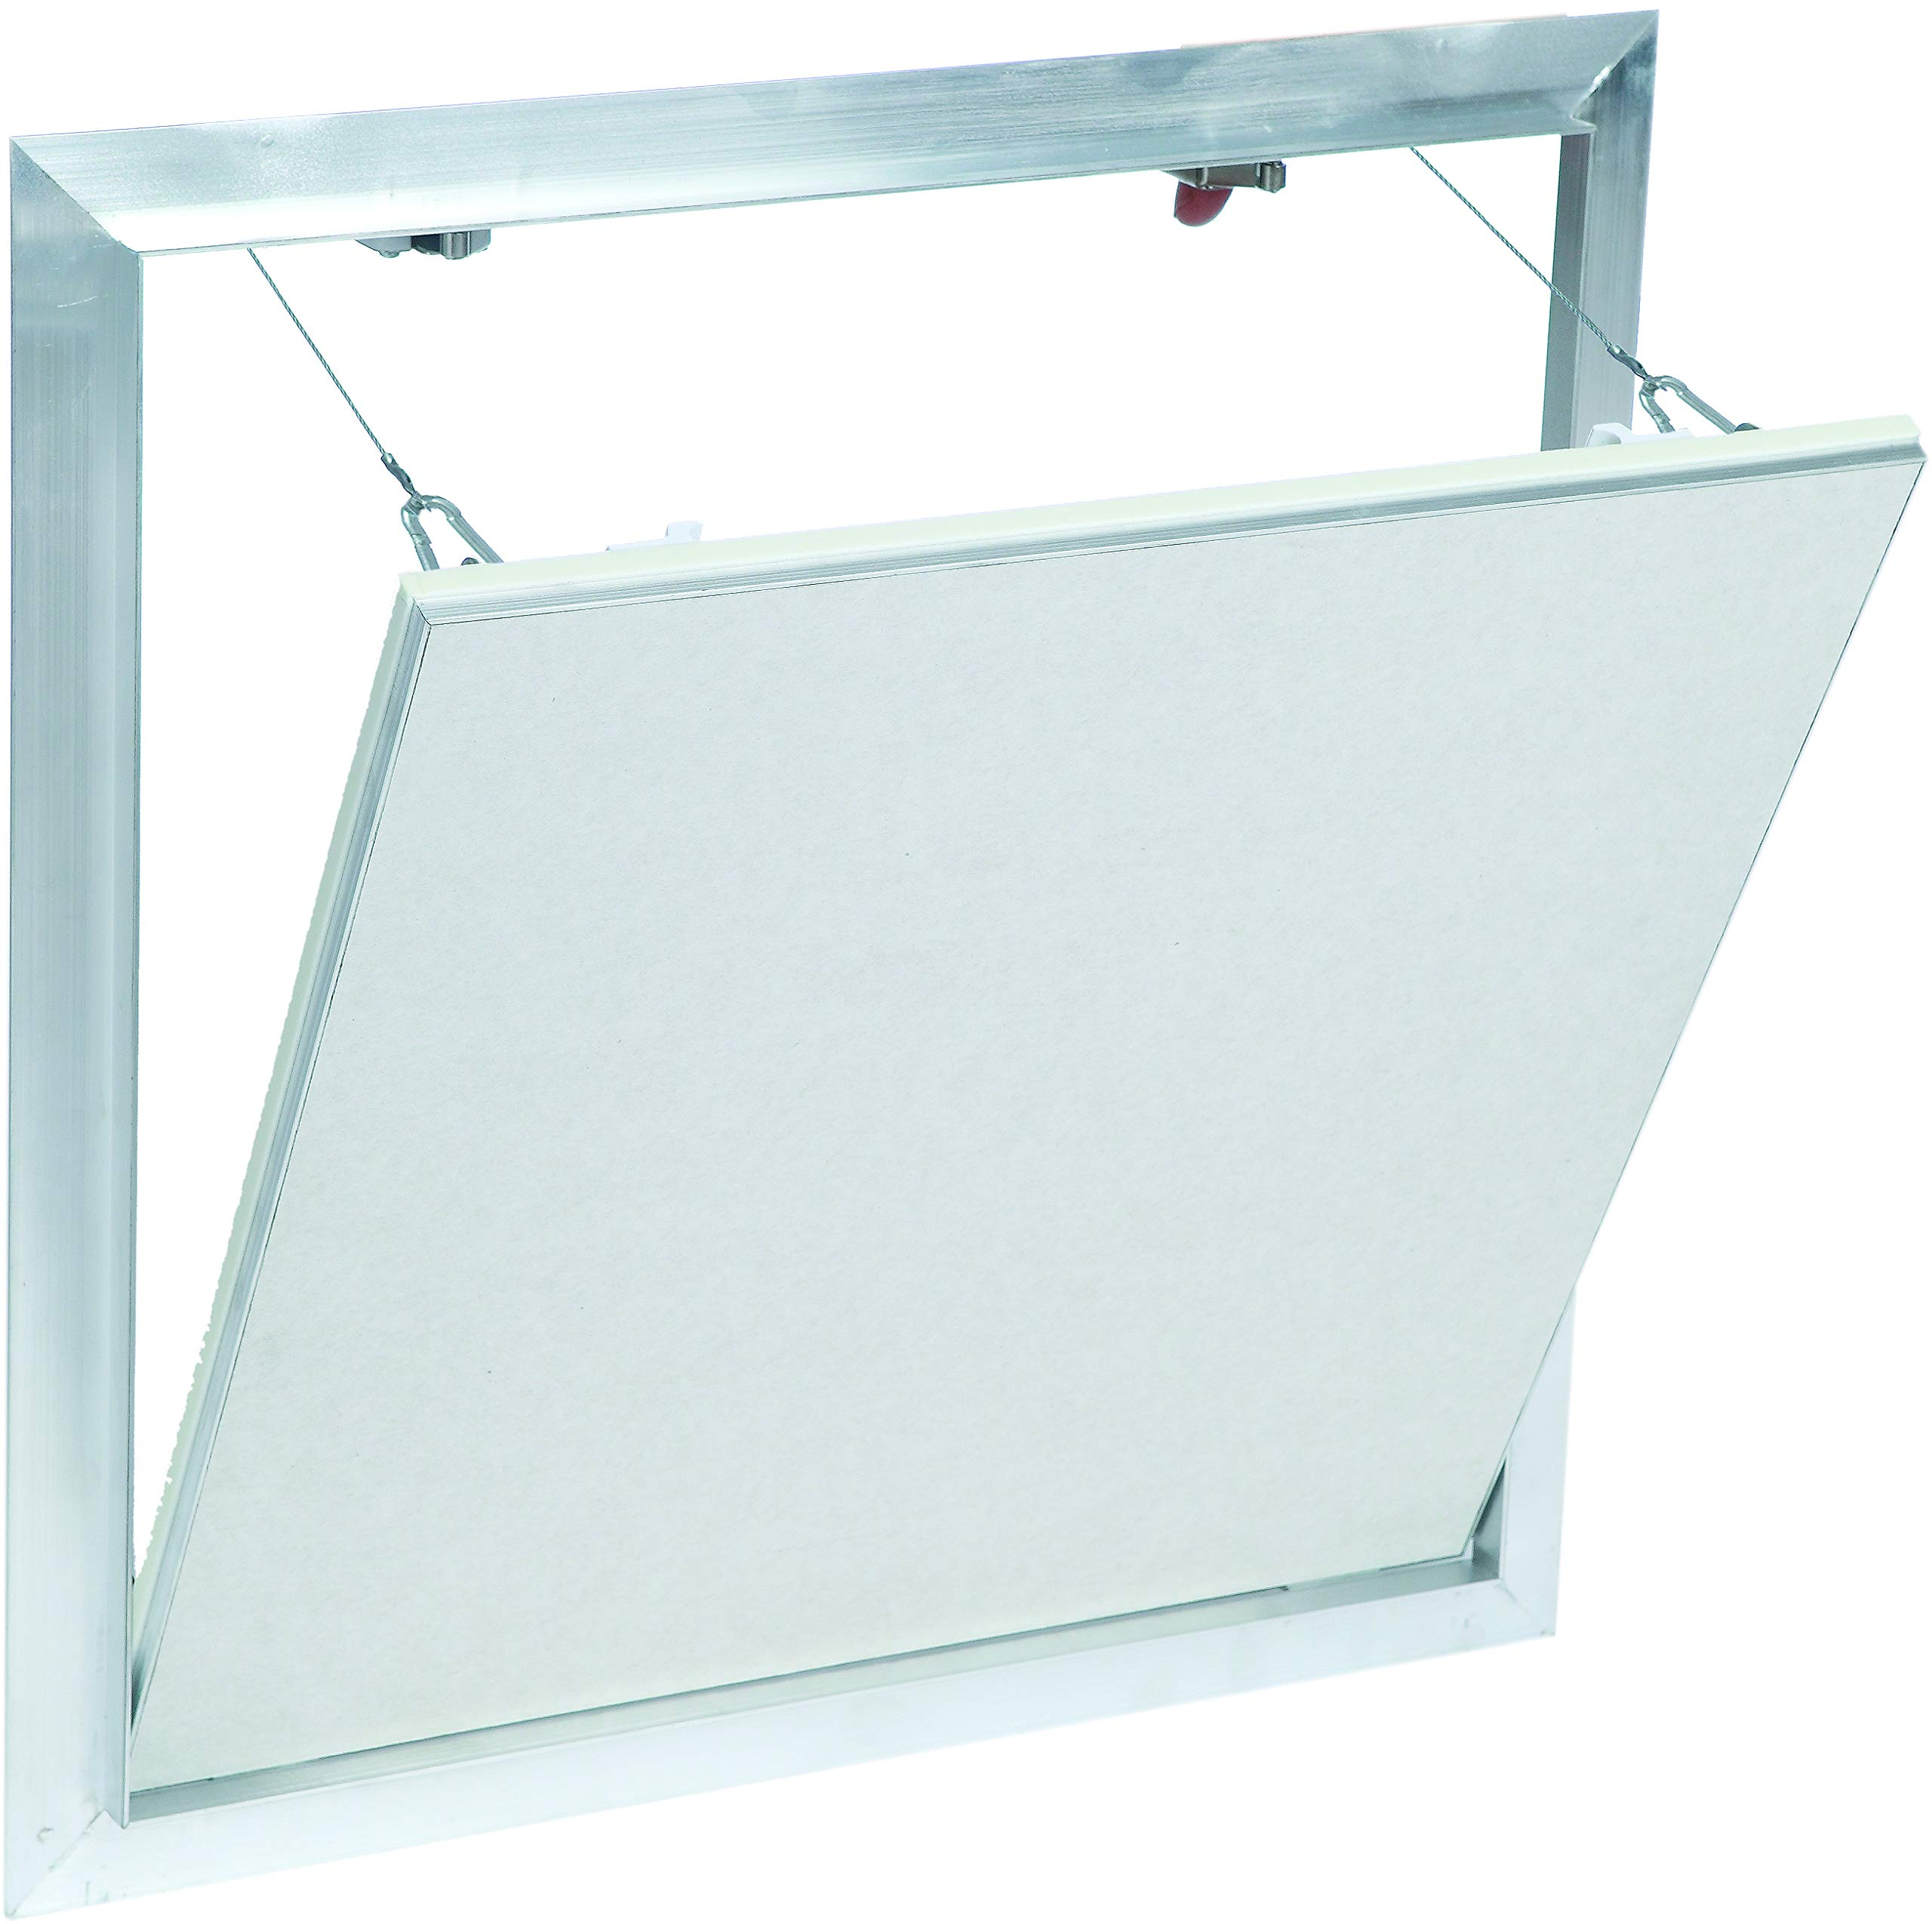 Attic Access Panel / Attic Hatch 22'' x 30'' for Icynene Classic Max for ceilings, with 1/2'' Drywall Inlay